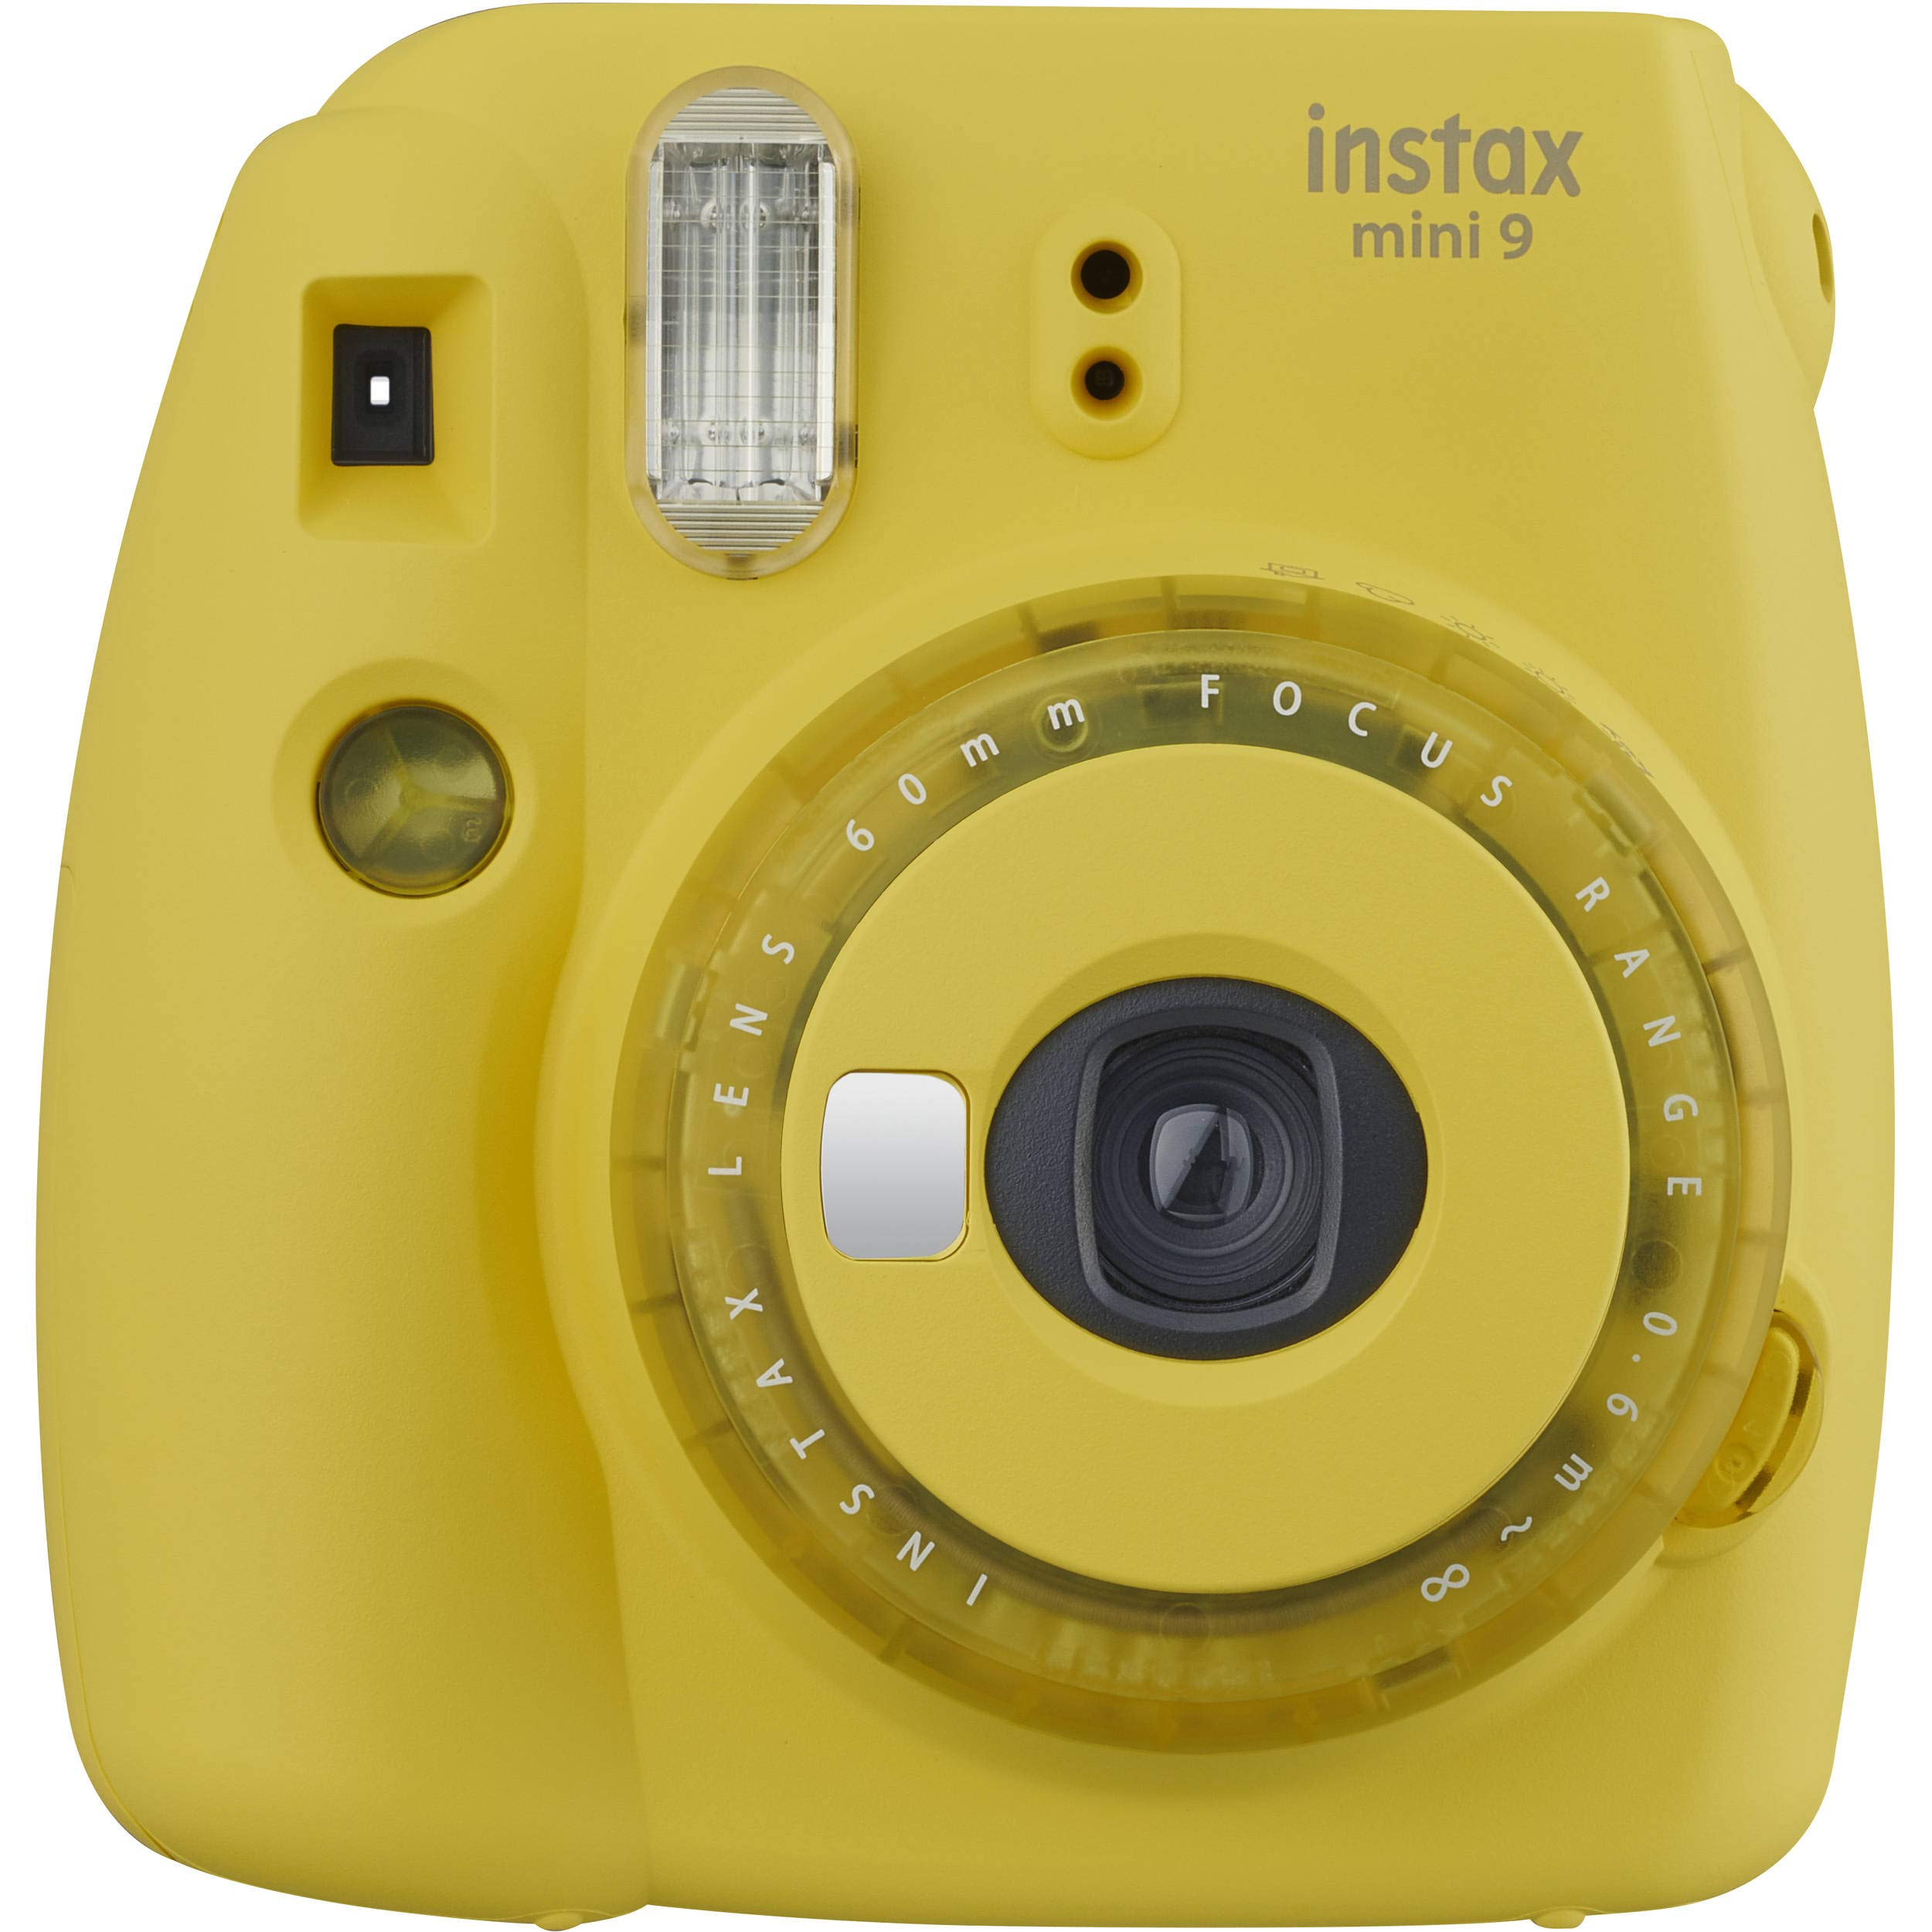 Fujifilm Instax Mini 9 (Yellow with Clear Accents), 3X Instax Film (60 Sheets), Groovy Case, Accordion Album and Hanging Pegs by Fujifilm (Image #2)